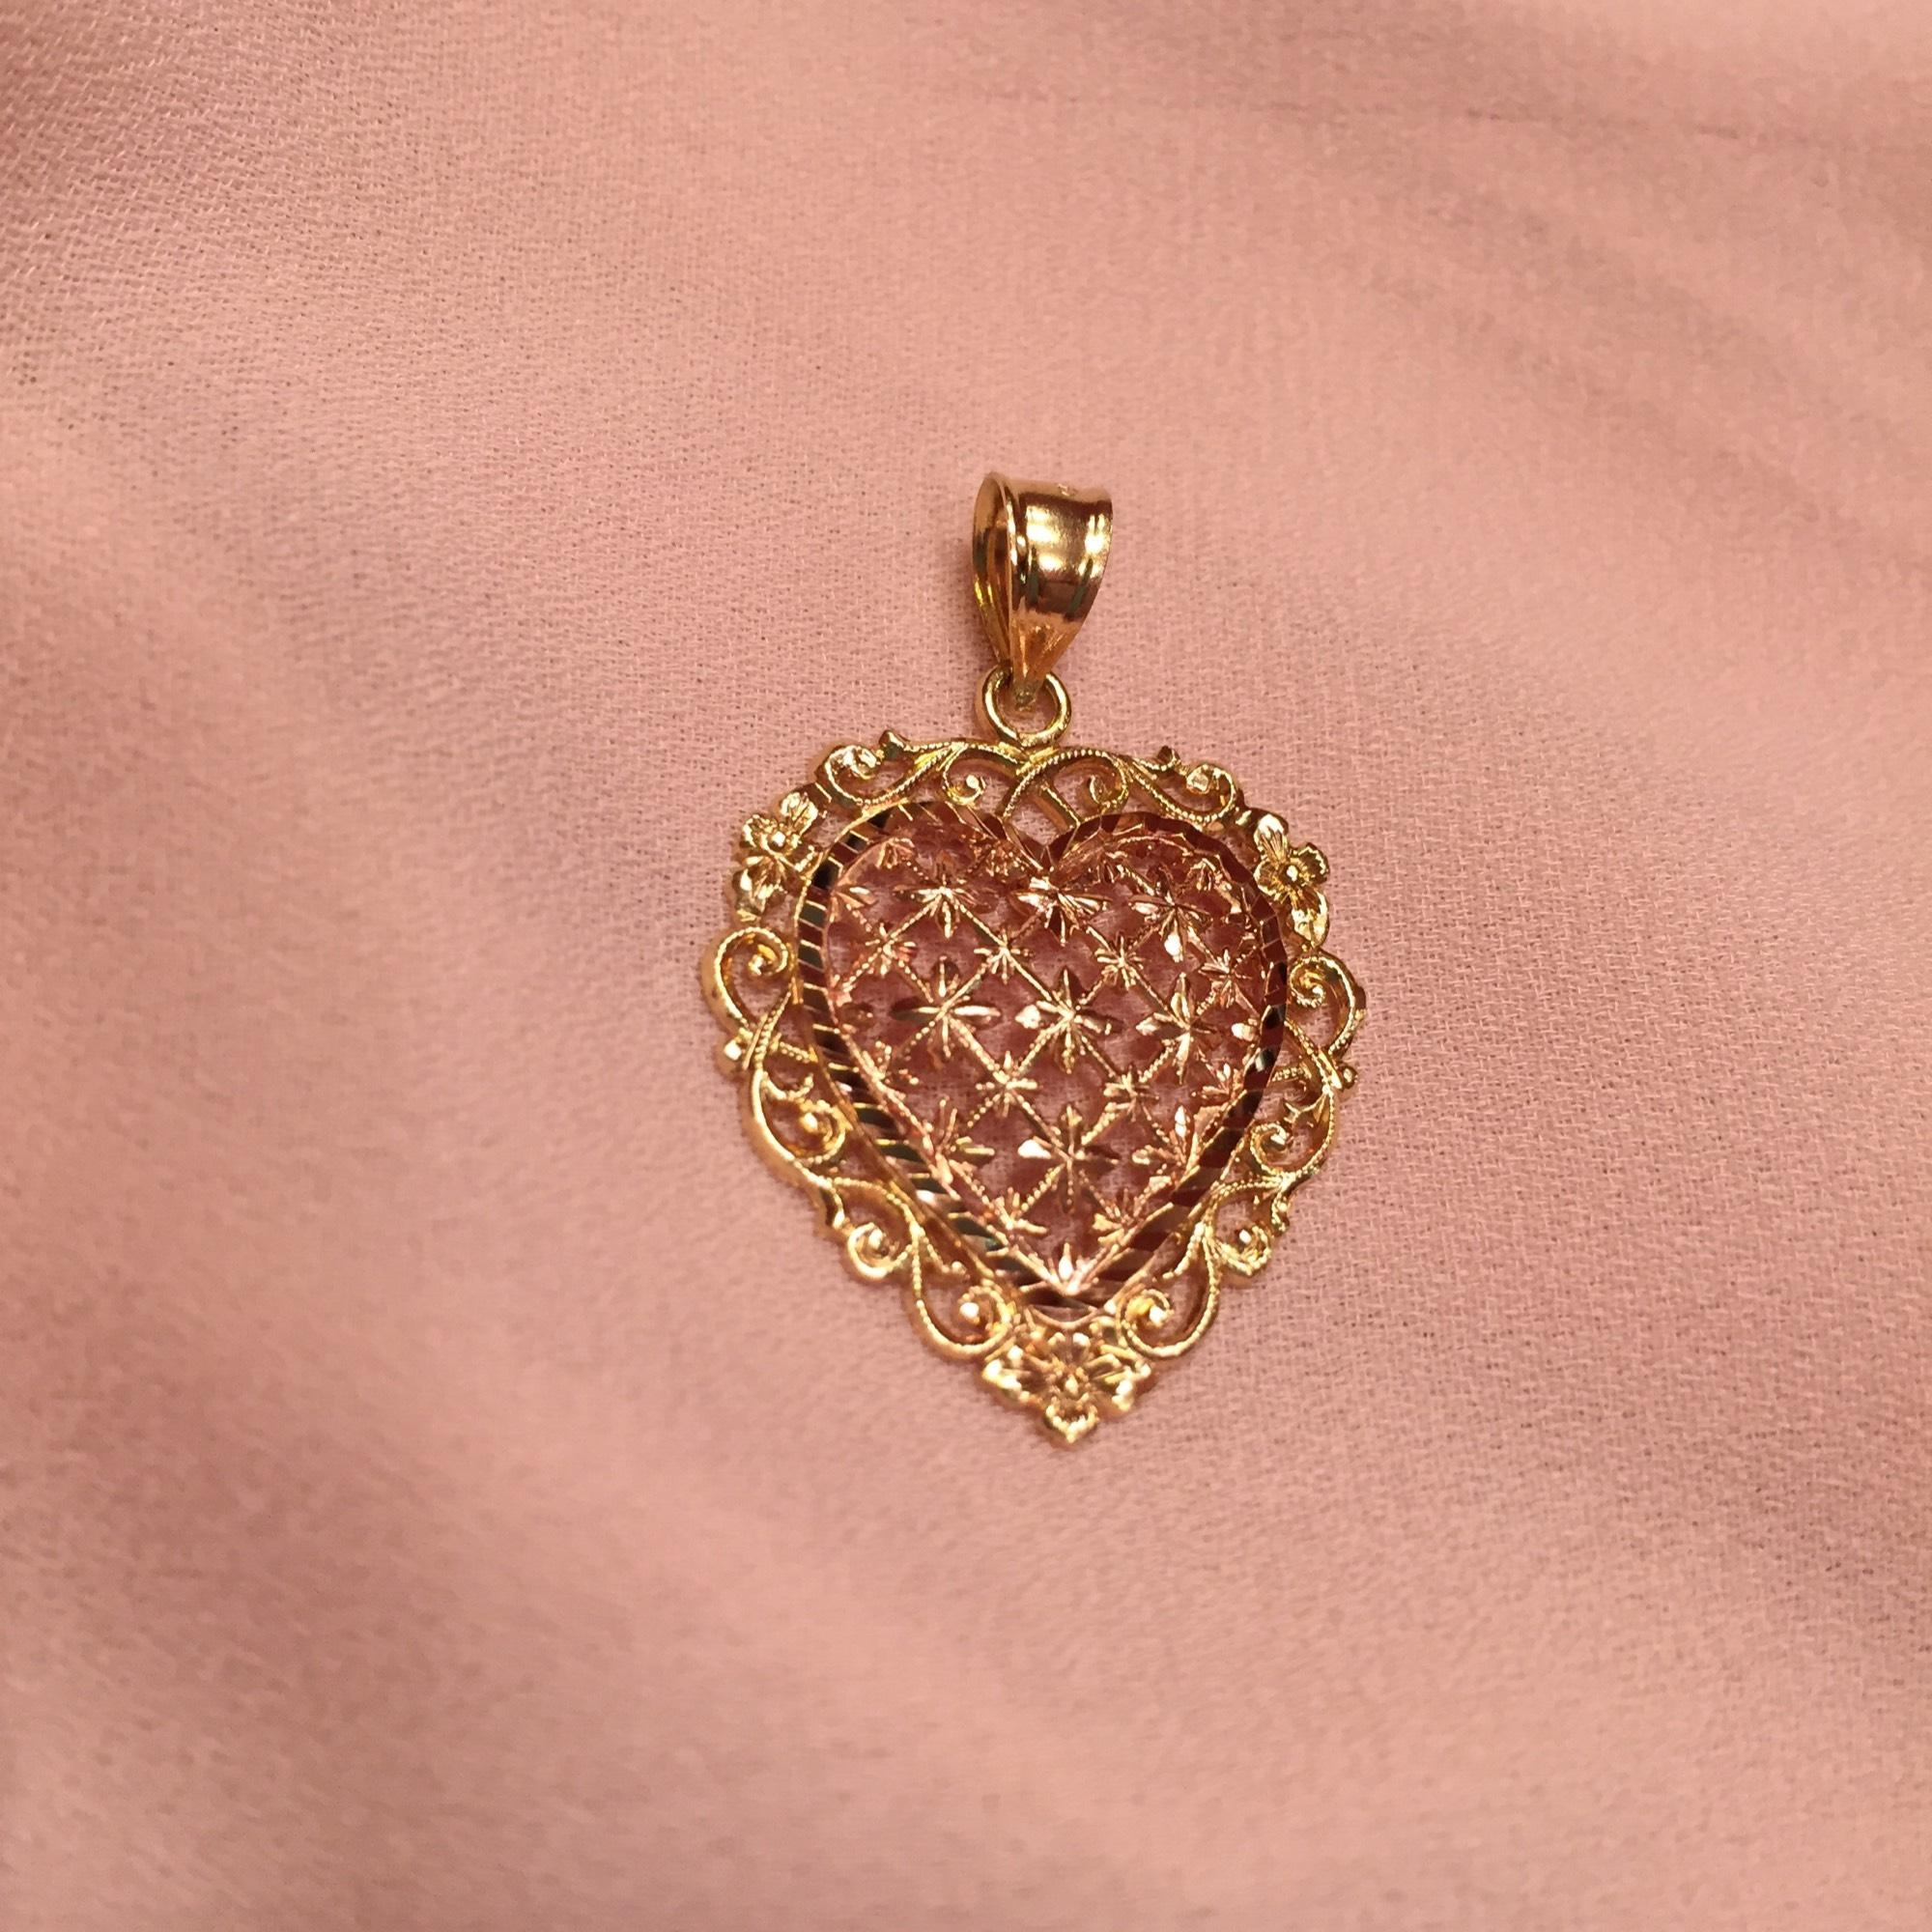 RoseYellow Gold Vintage 14k Filigree Heart Pendant Gently Worn